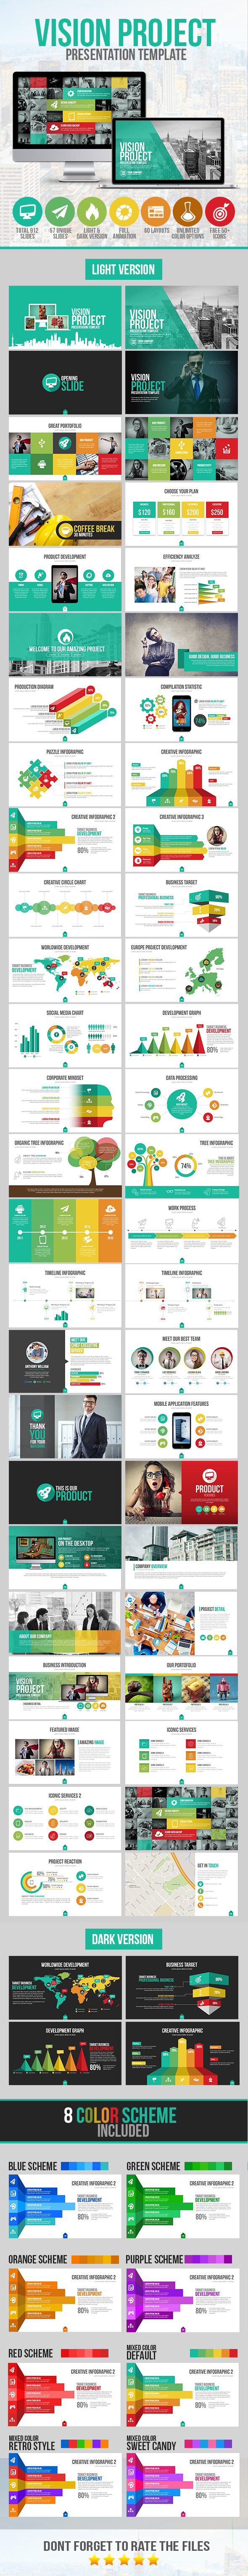 vision project presentation templatebrandearth | graphicriver, Presentation templates